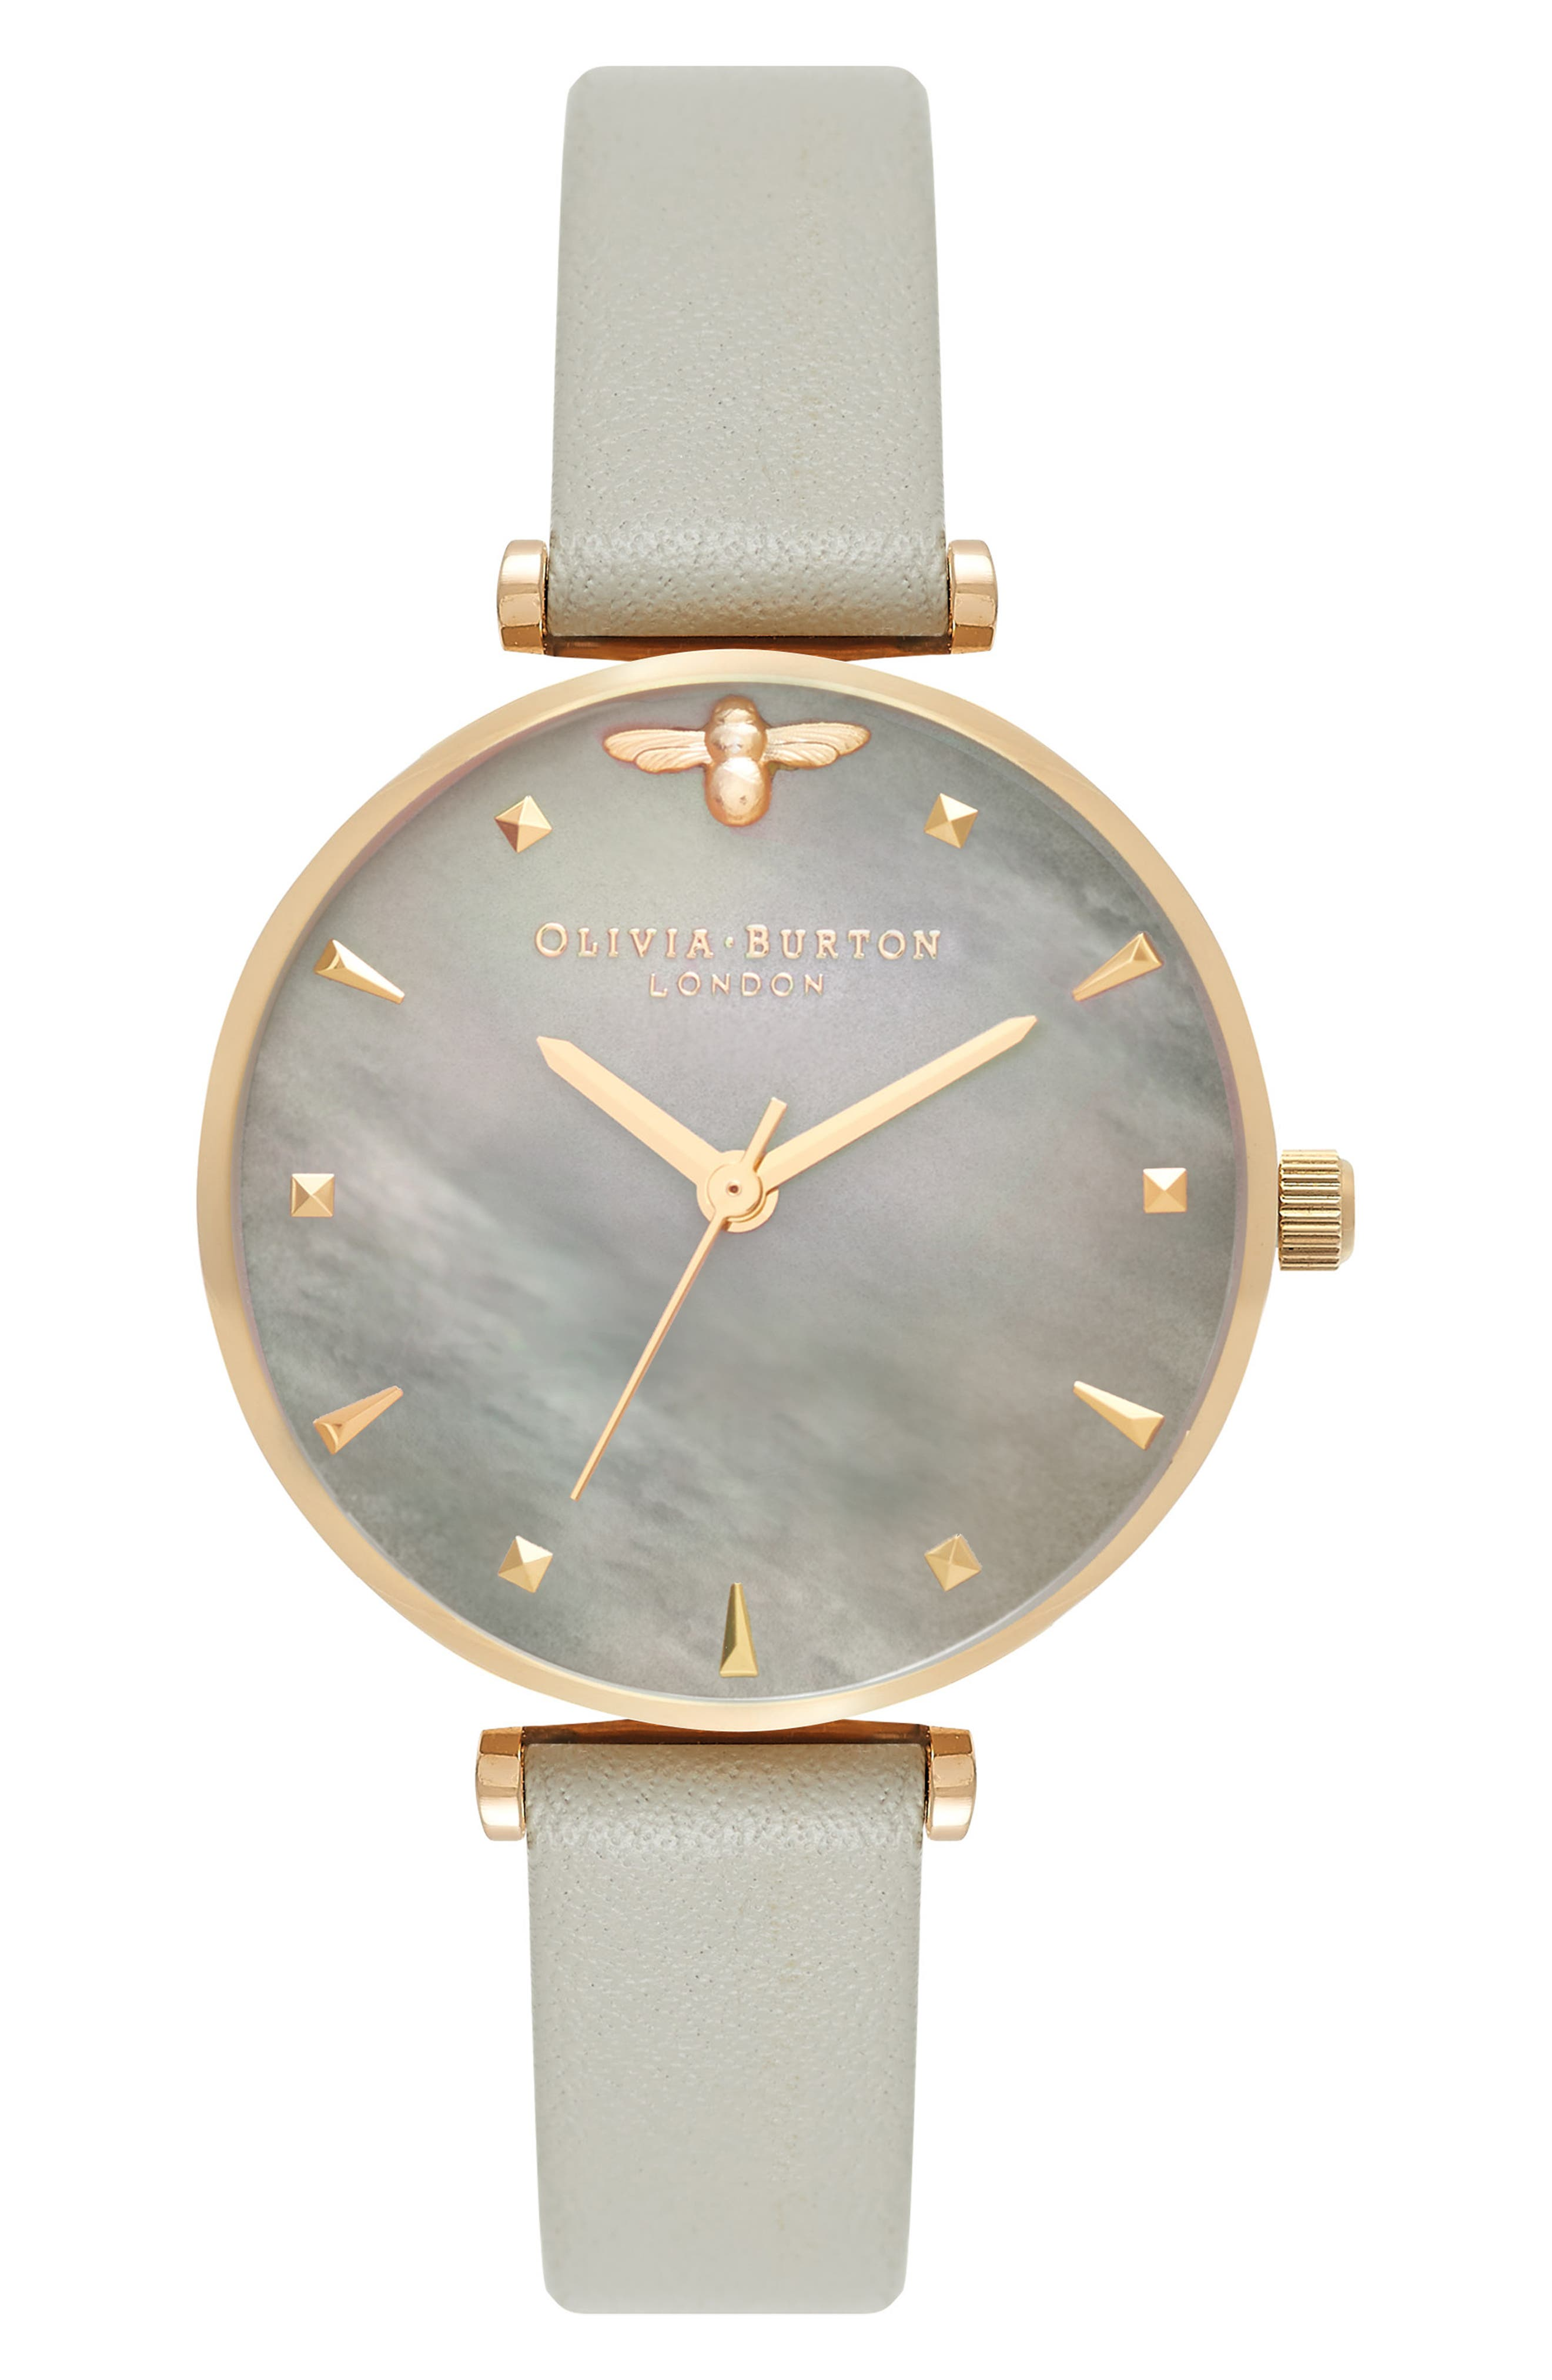 QUEEN BEE LEATHER STRAP WATCH, 30MM